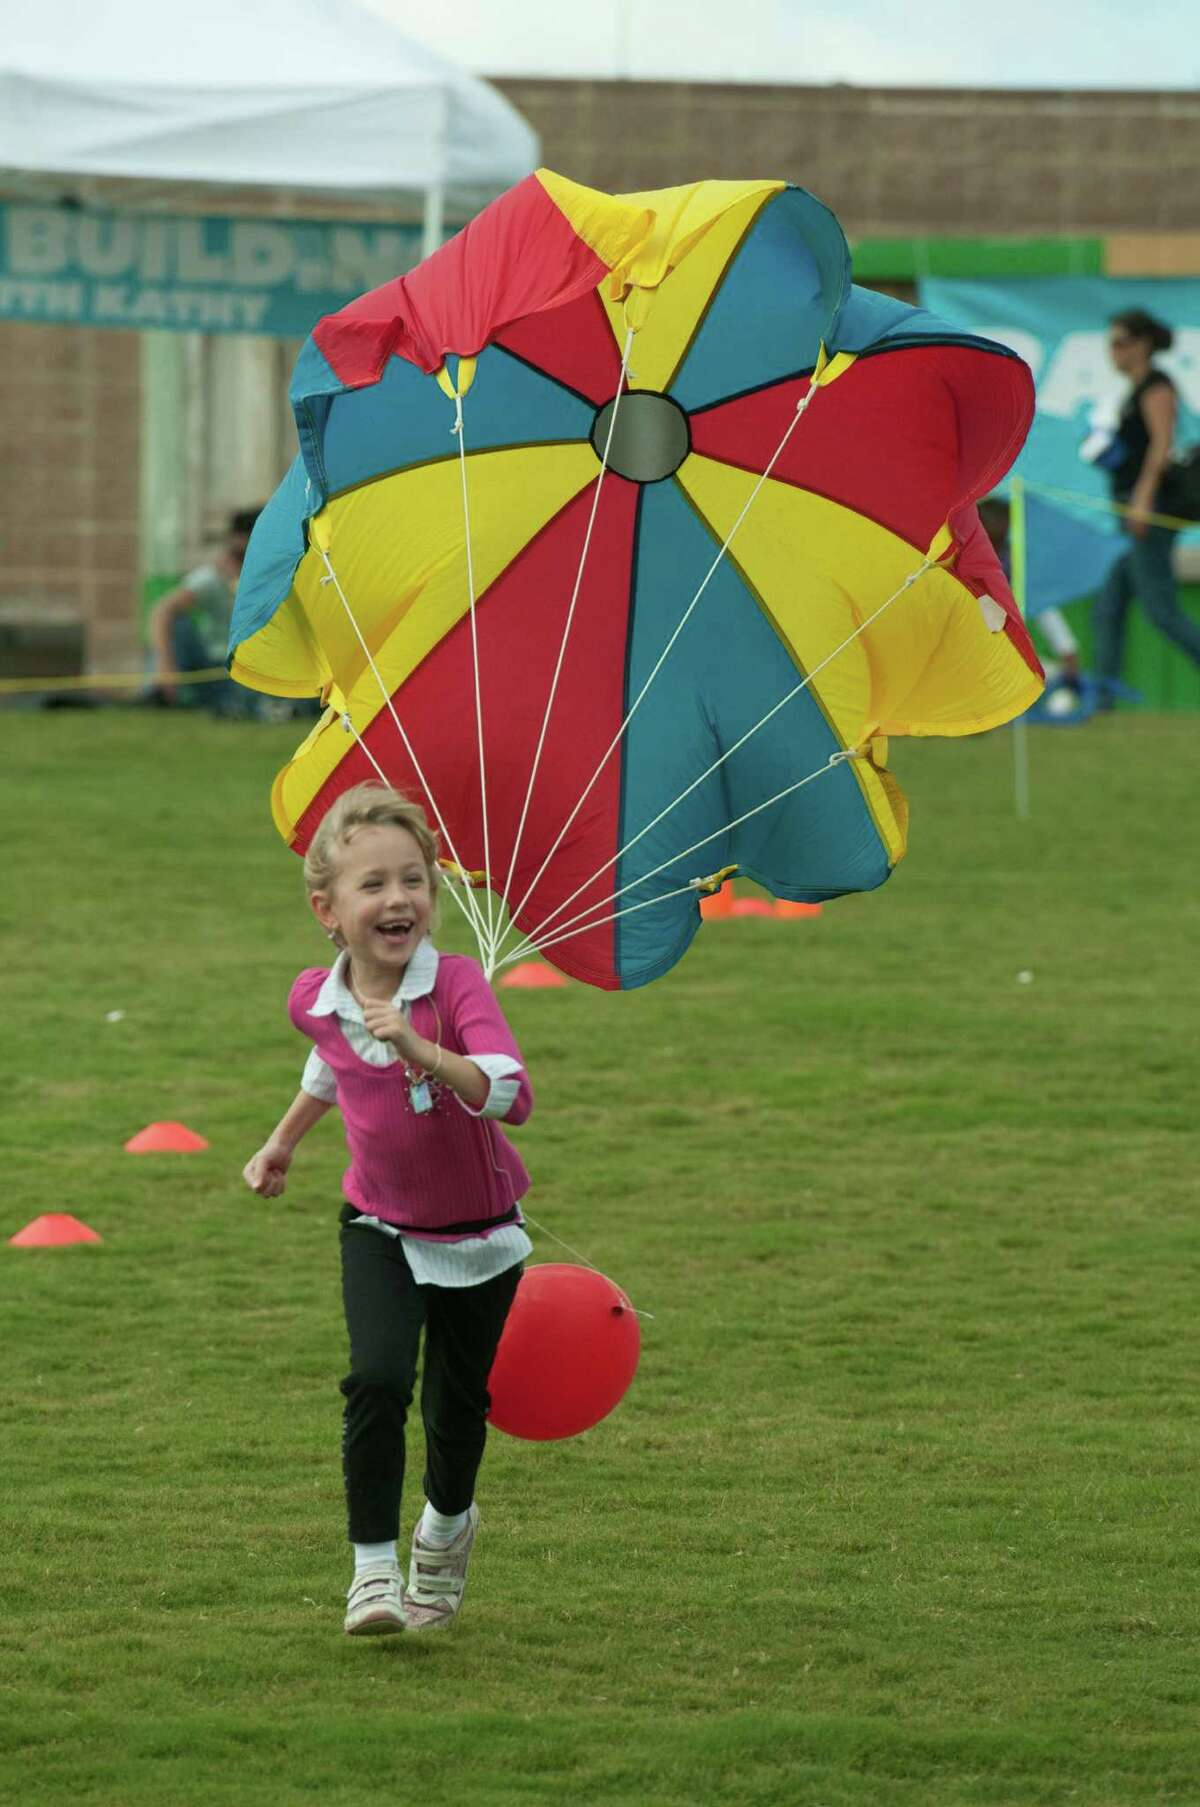 The adventure at the 18th Annual Children's Festival at The Cynthia Woods Mitchell Pavilion Nov. 9-10, 2013, includes kite flying and parachute races on the hill. Kids also can pan for gold, make arts and crafts, get their face painted, take a train ride and more.